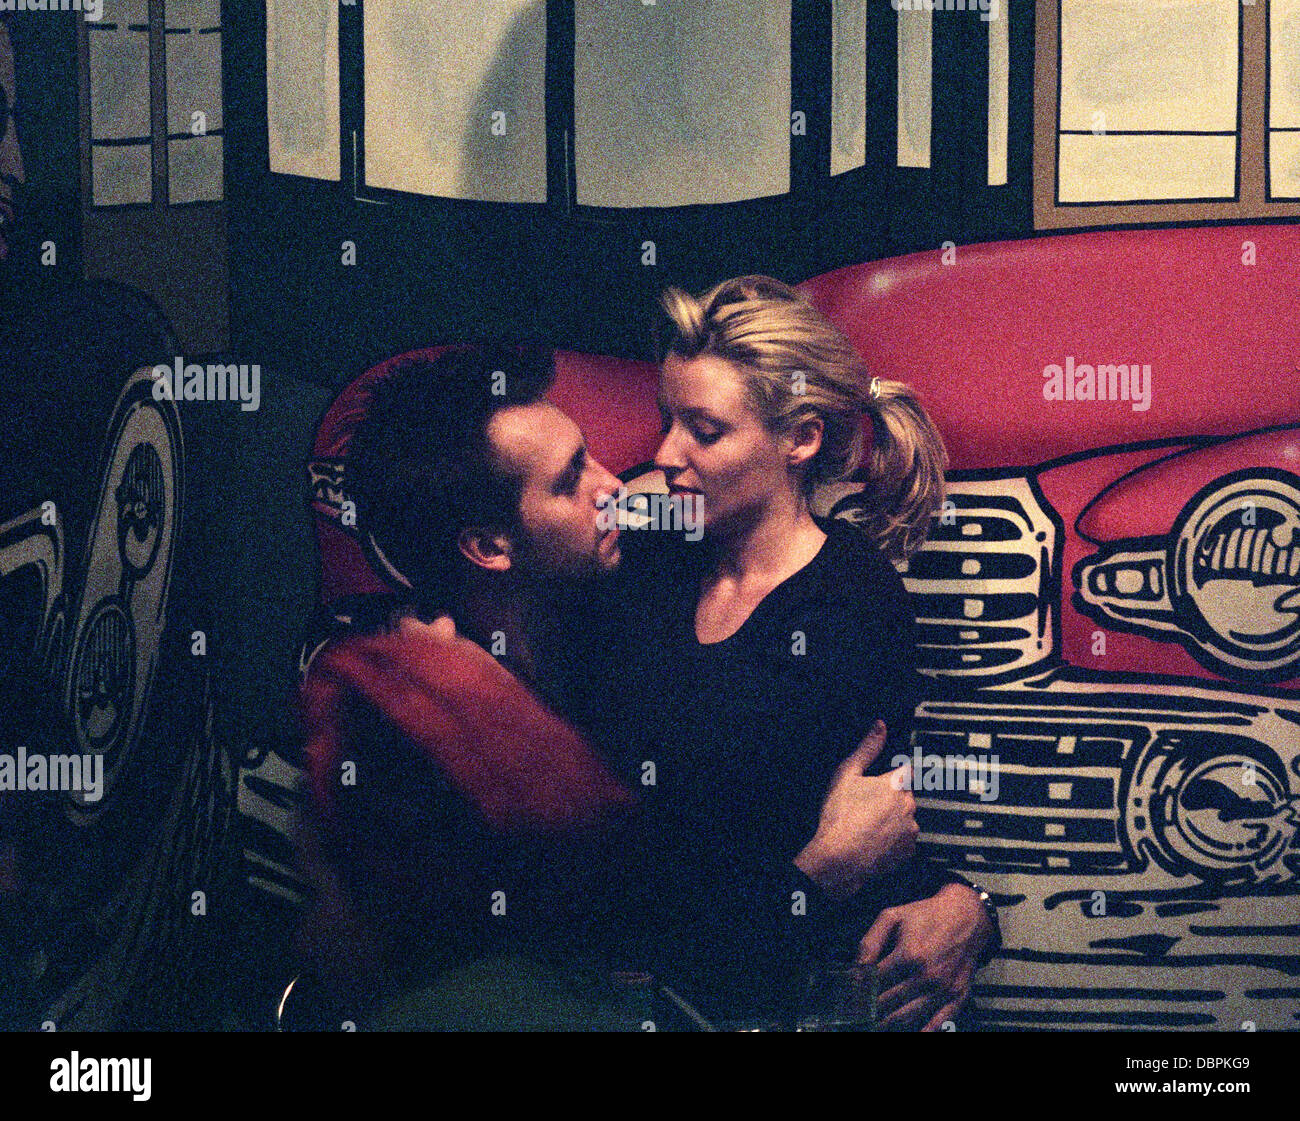 Dannii Minogue and boyfriend Steve Shaw enjoy a smooch in an Chelsea Cafe, London, Britain December 1996 - Stock Image